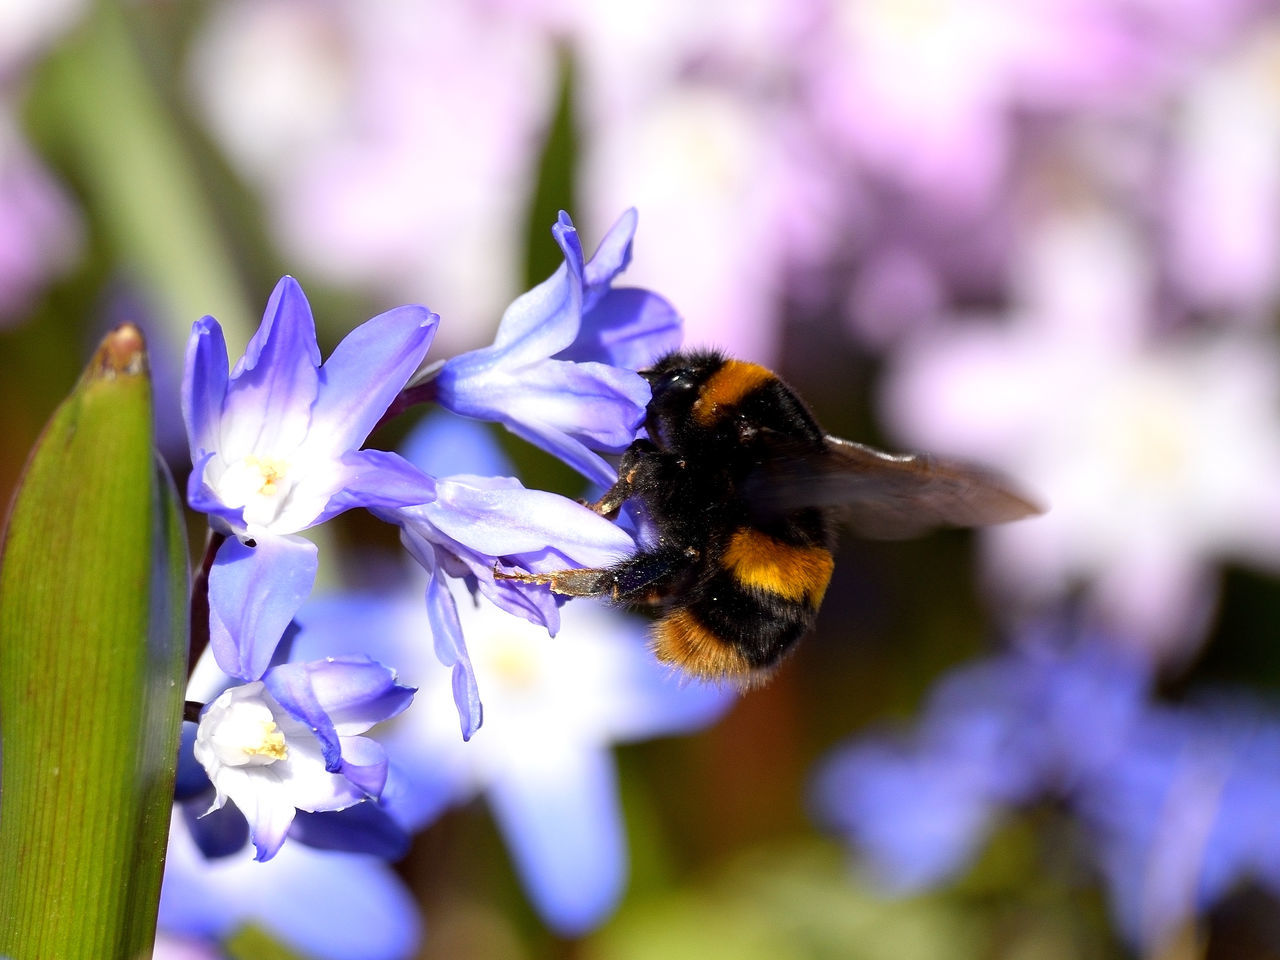 Animal Themes Animals In The Wild Beauty In Nature Bee Bumblebee Buzzing Close-up Colourful Flower Flying Focus On Foreground Fragility Freshness Growth Insect Mauve  Moment In Time Nature One Animal Outdoors Petal Pollination Pollinator Purple Wings